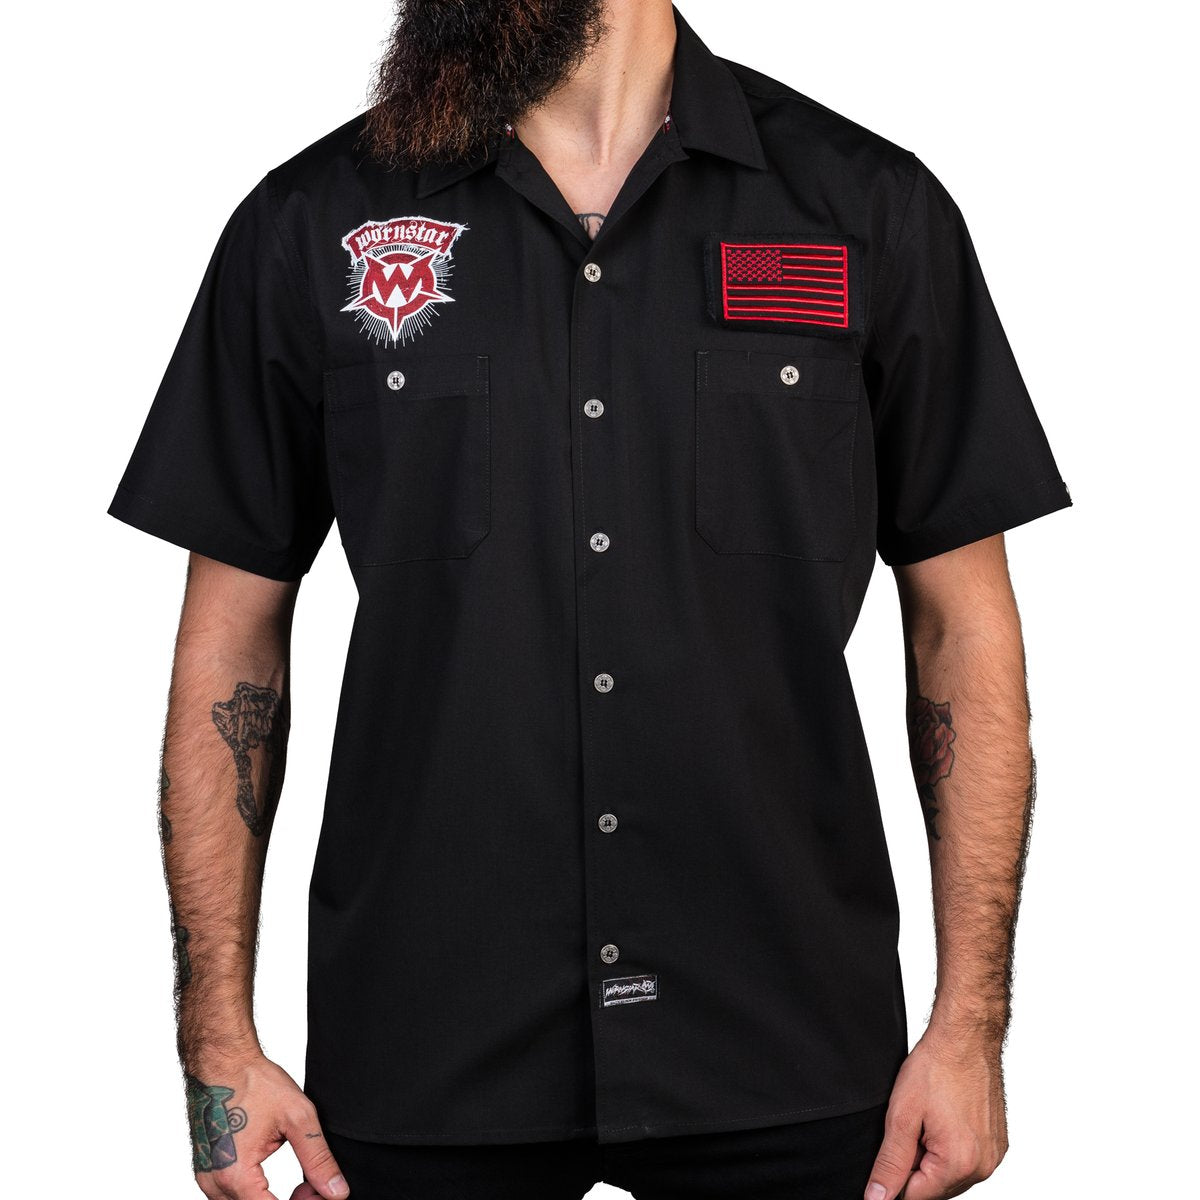 Wornstar Skull Work Shirt